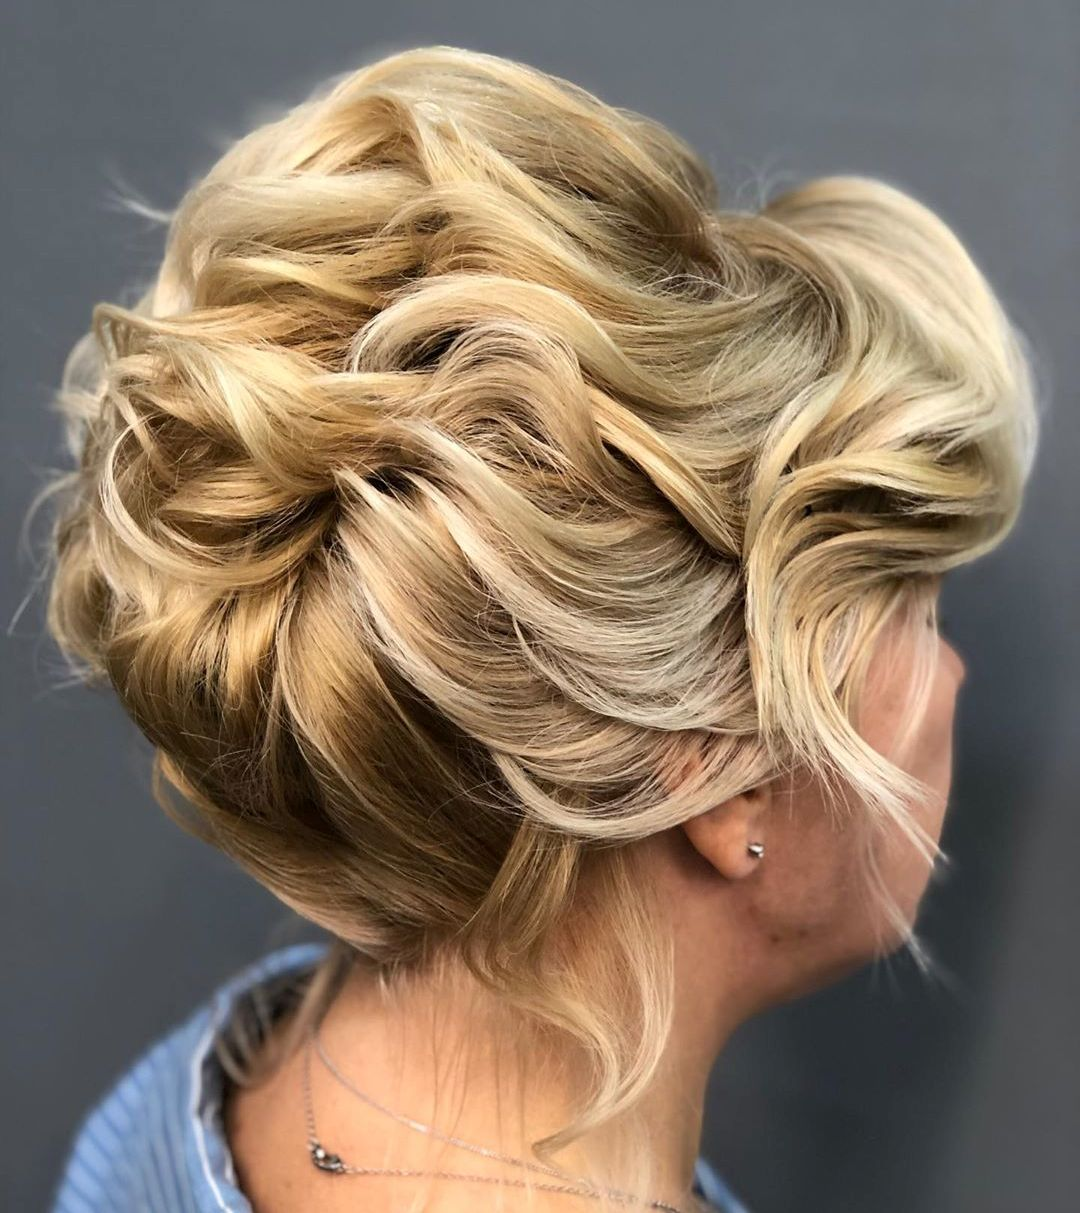 Messy Curly Updo for Short Hair